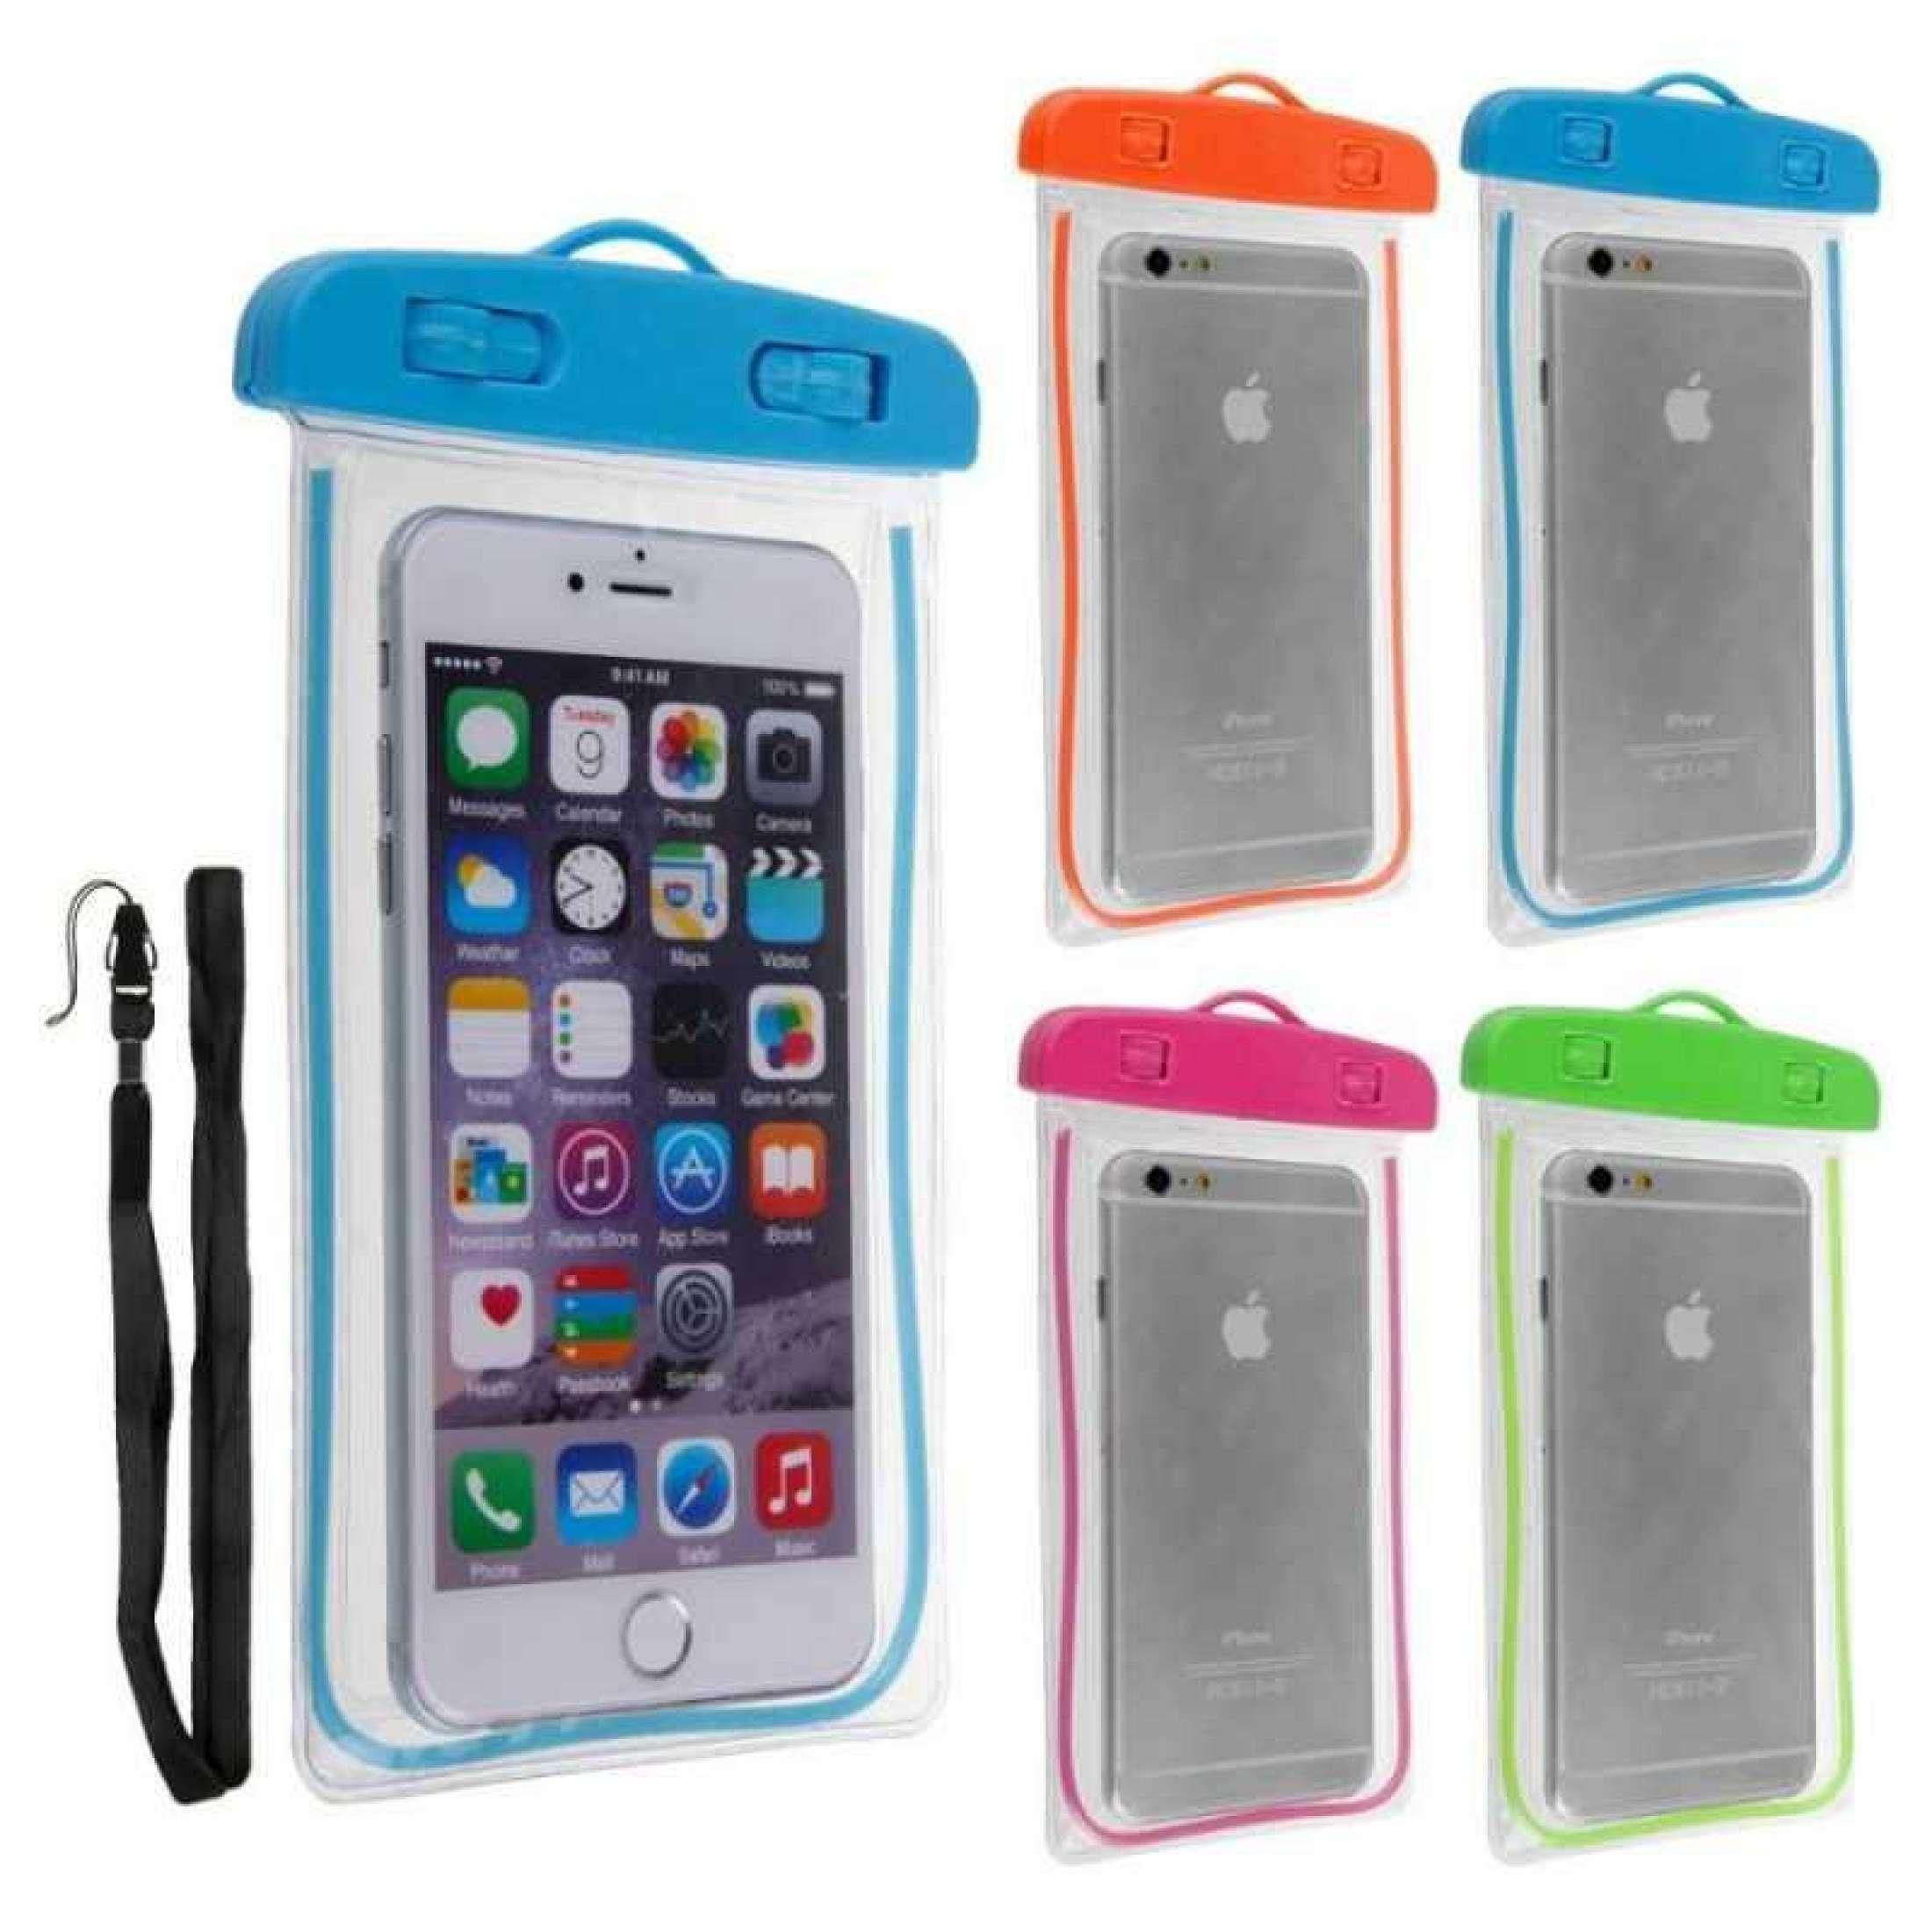 81903d0bd Waterproof Case Underwater PVC Bag Transparent Touch Screen Premium Cell  Phone Pouch Cover For Travel